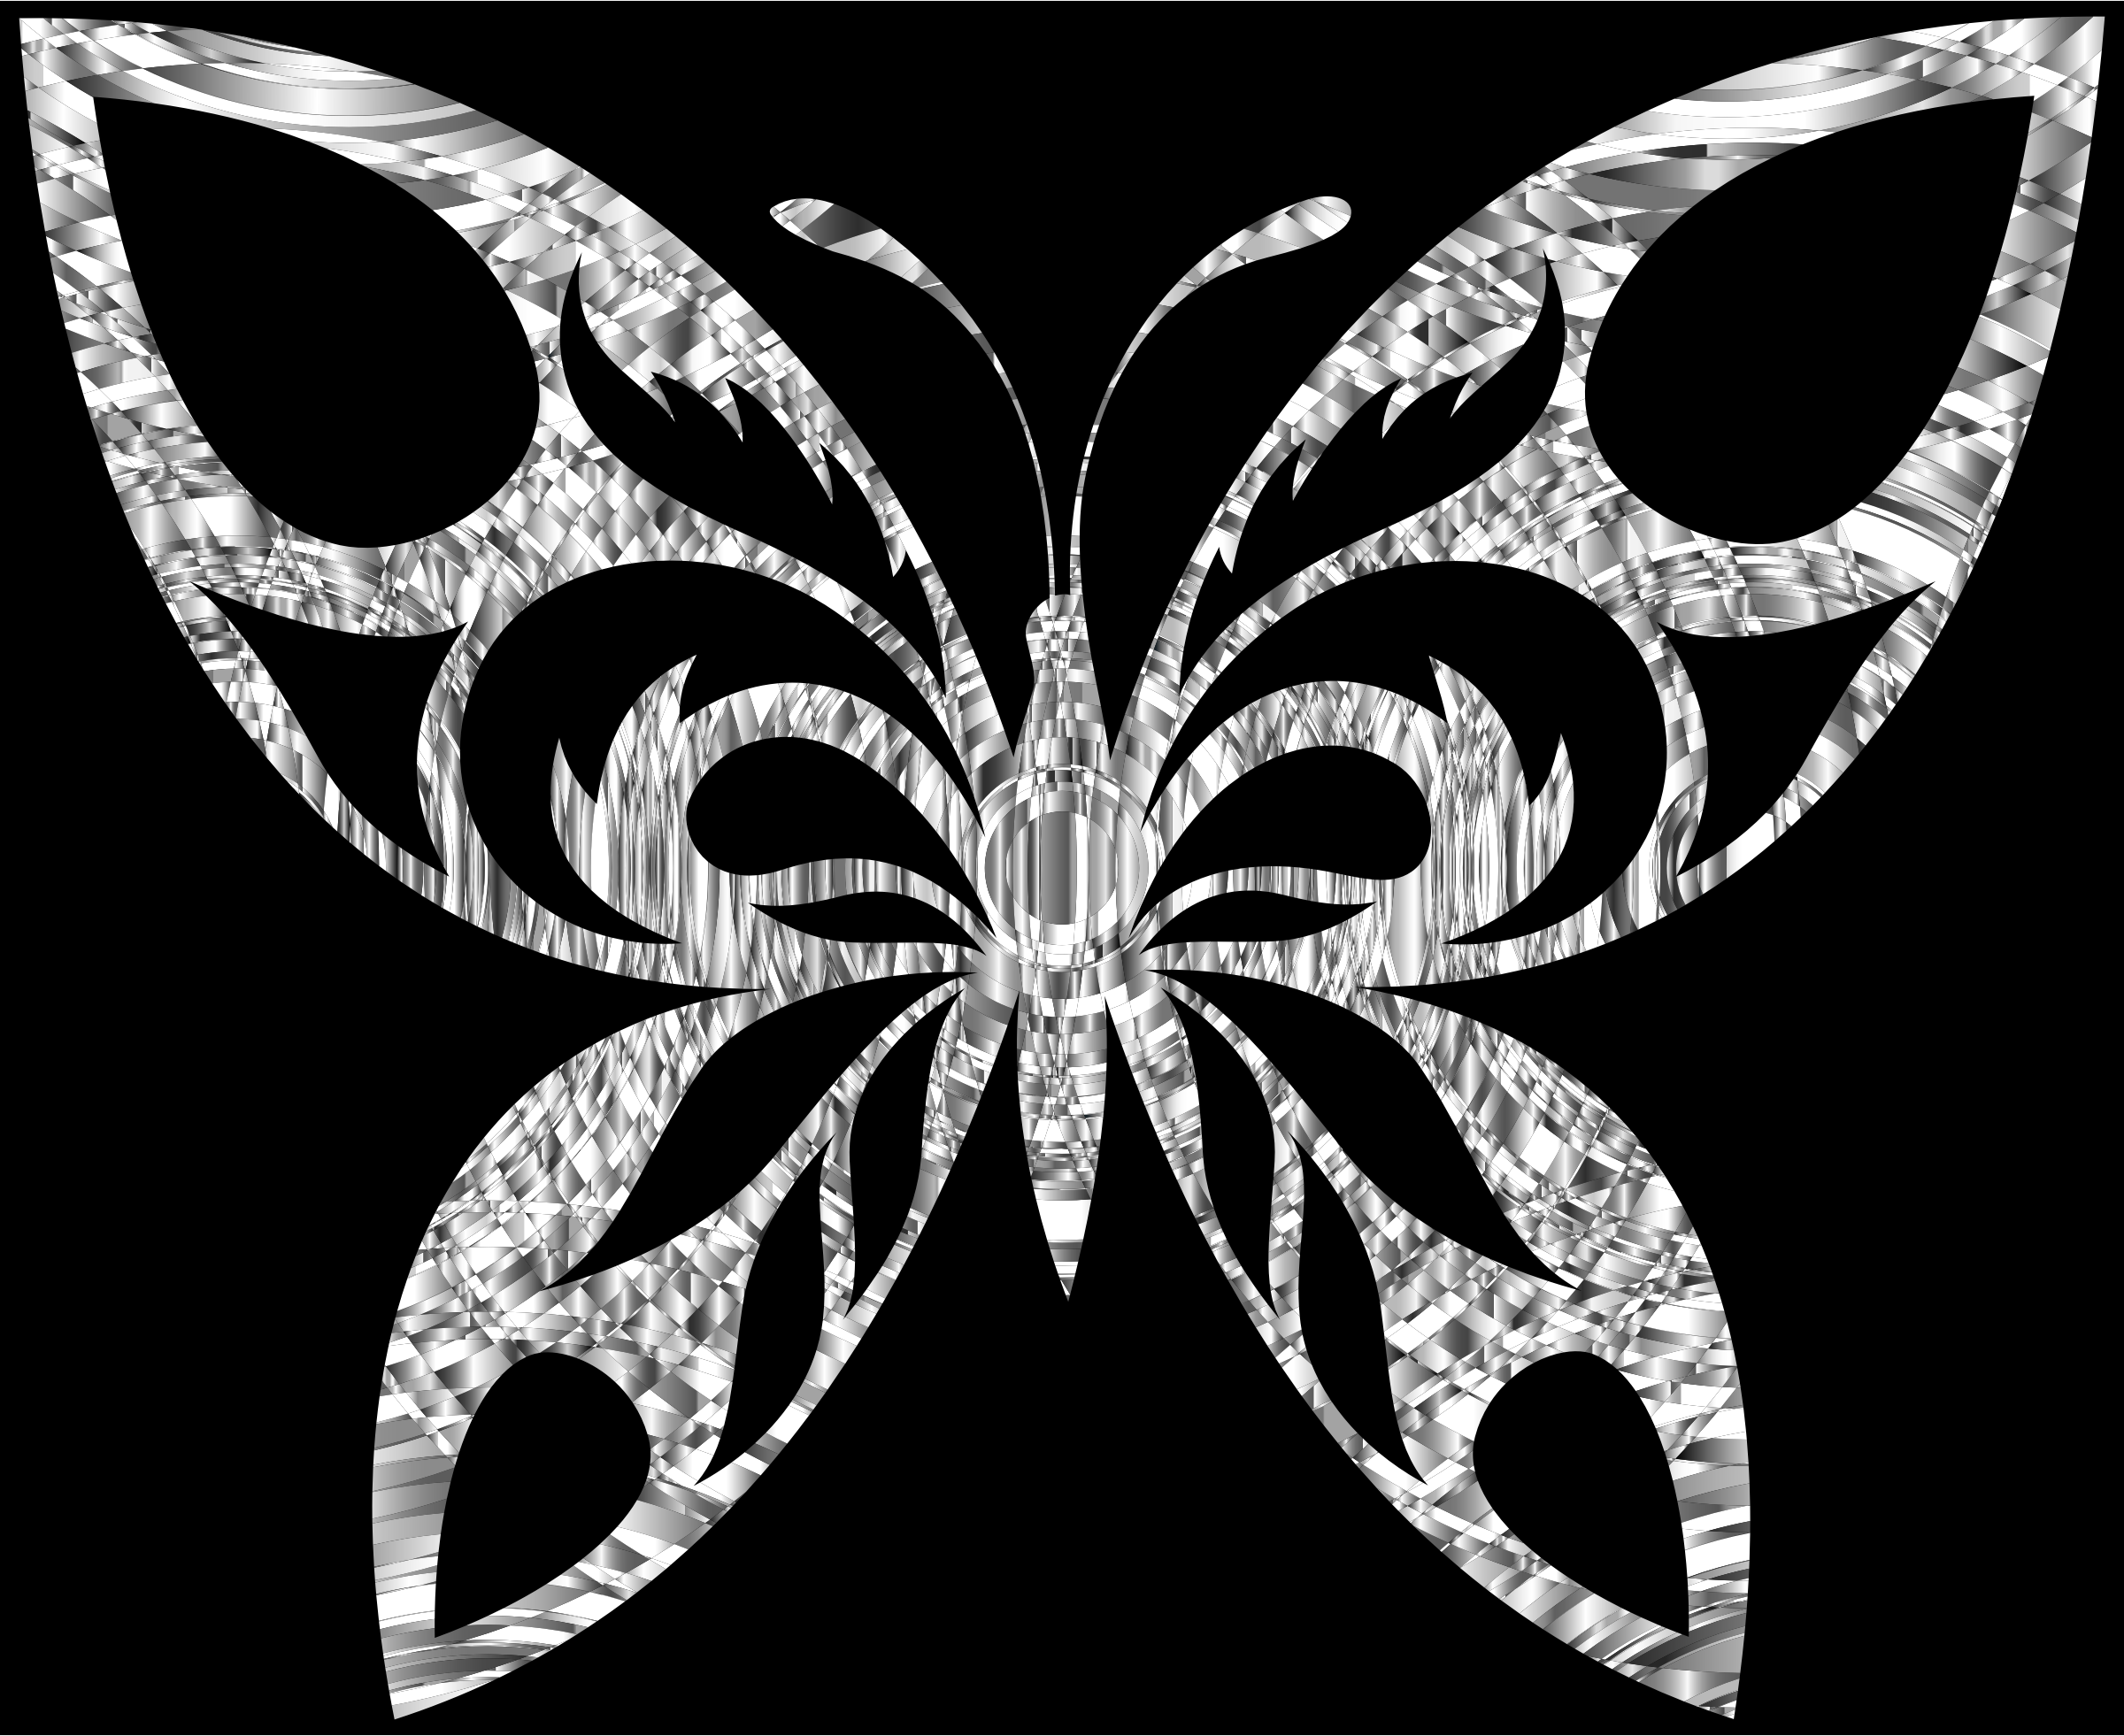 Diamond Tribal Butterfly Silhouette With Background by GDJ